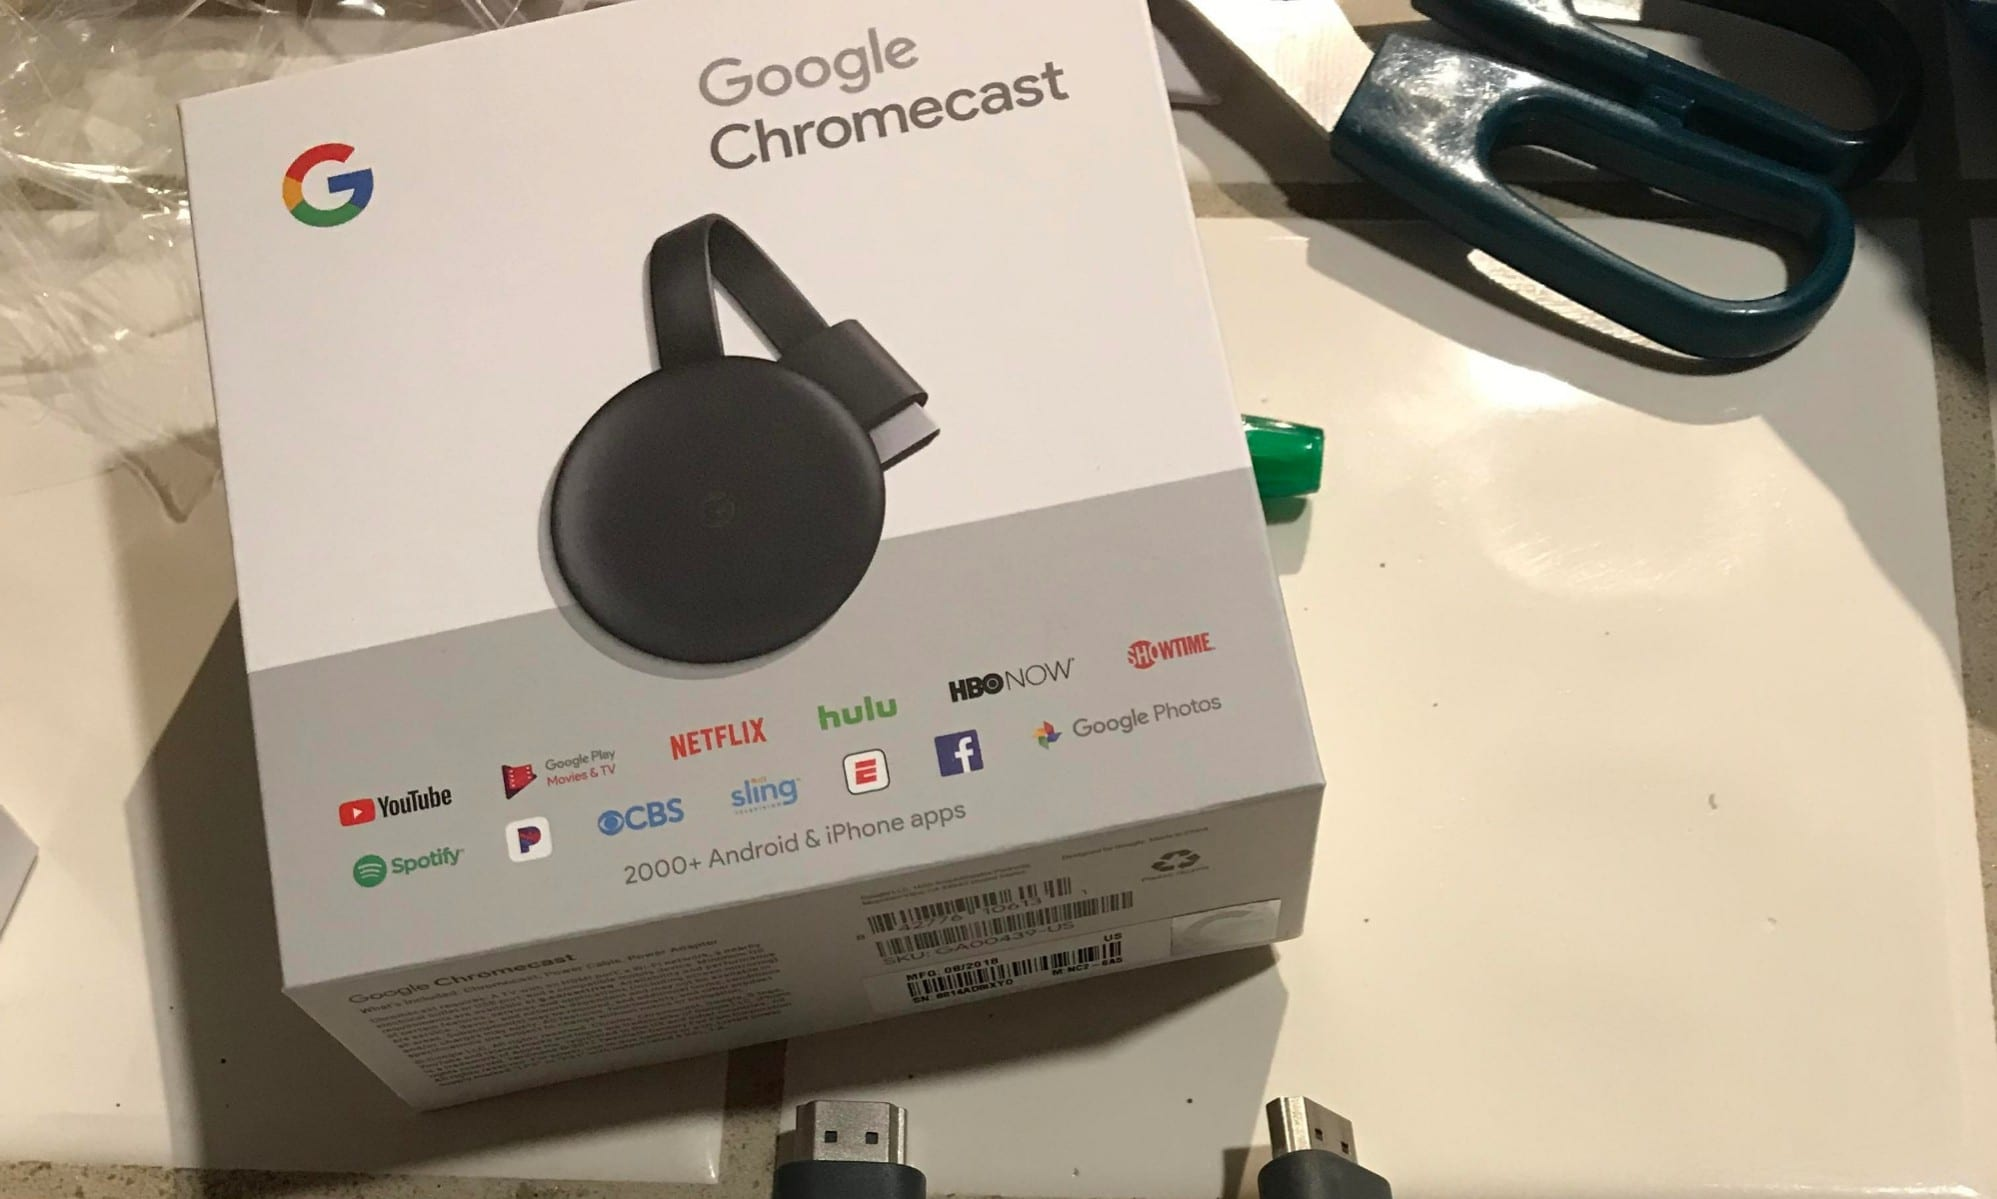 Best Buy Accidentally Sells Unreleased 3rd Generation Google Chromecast